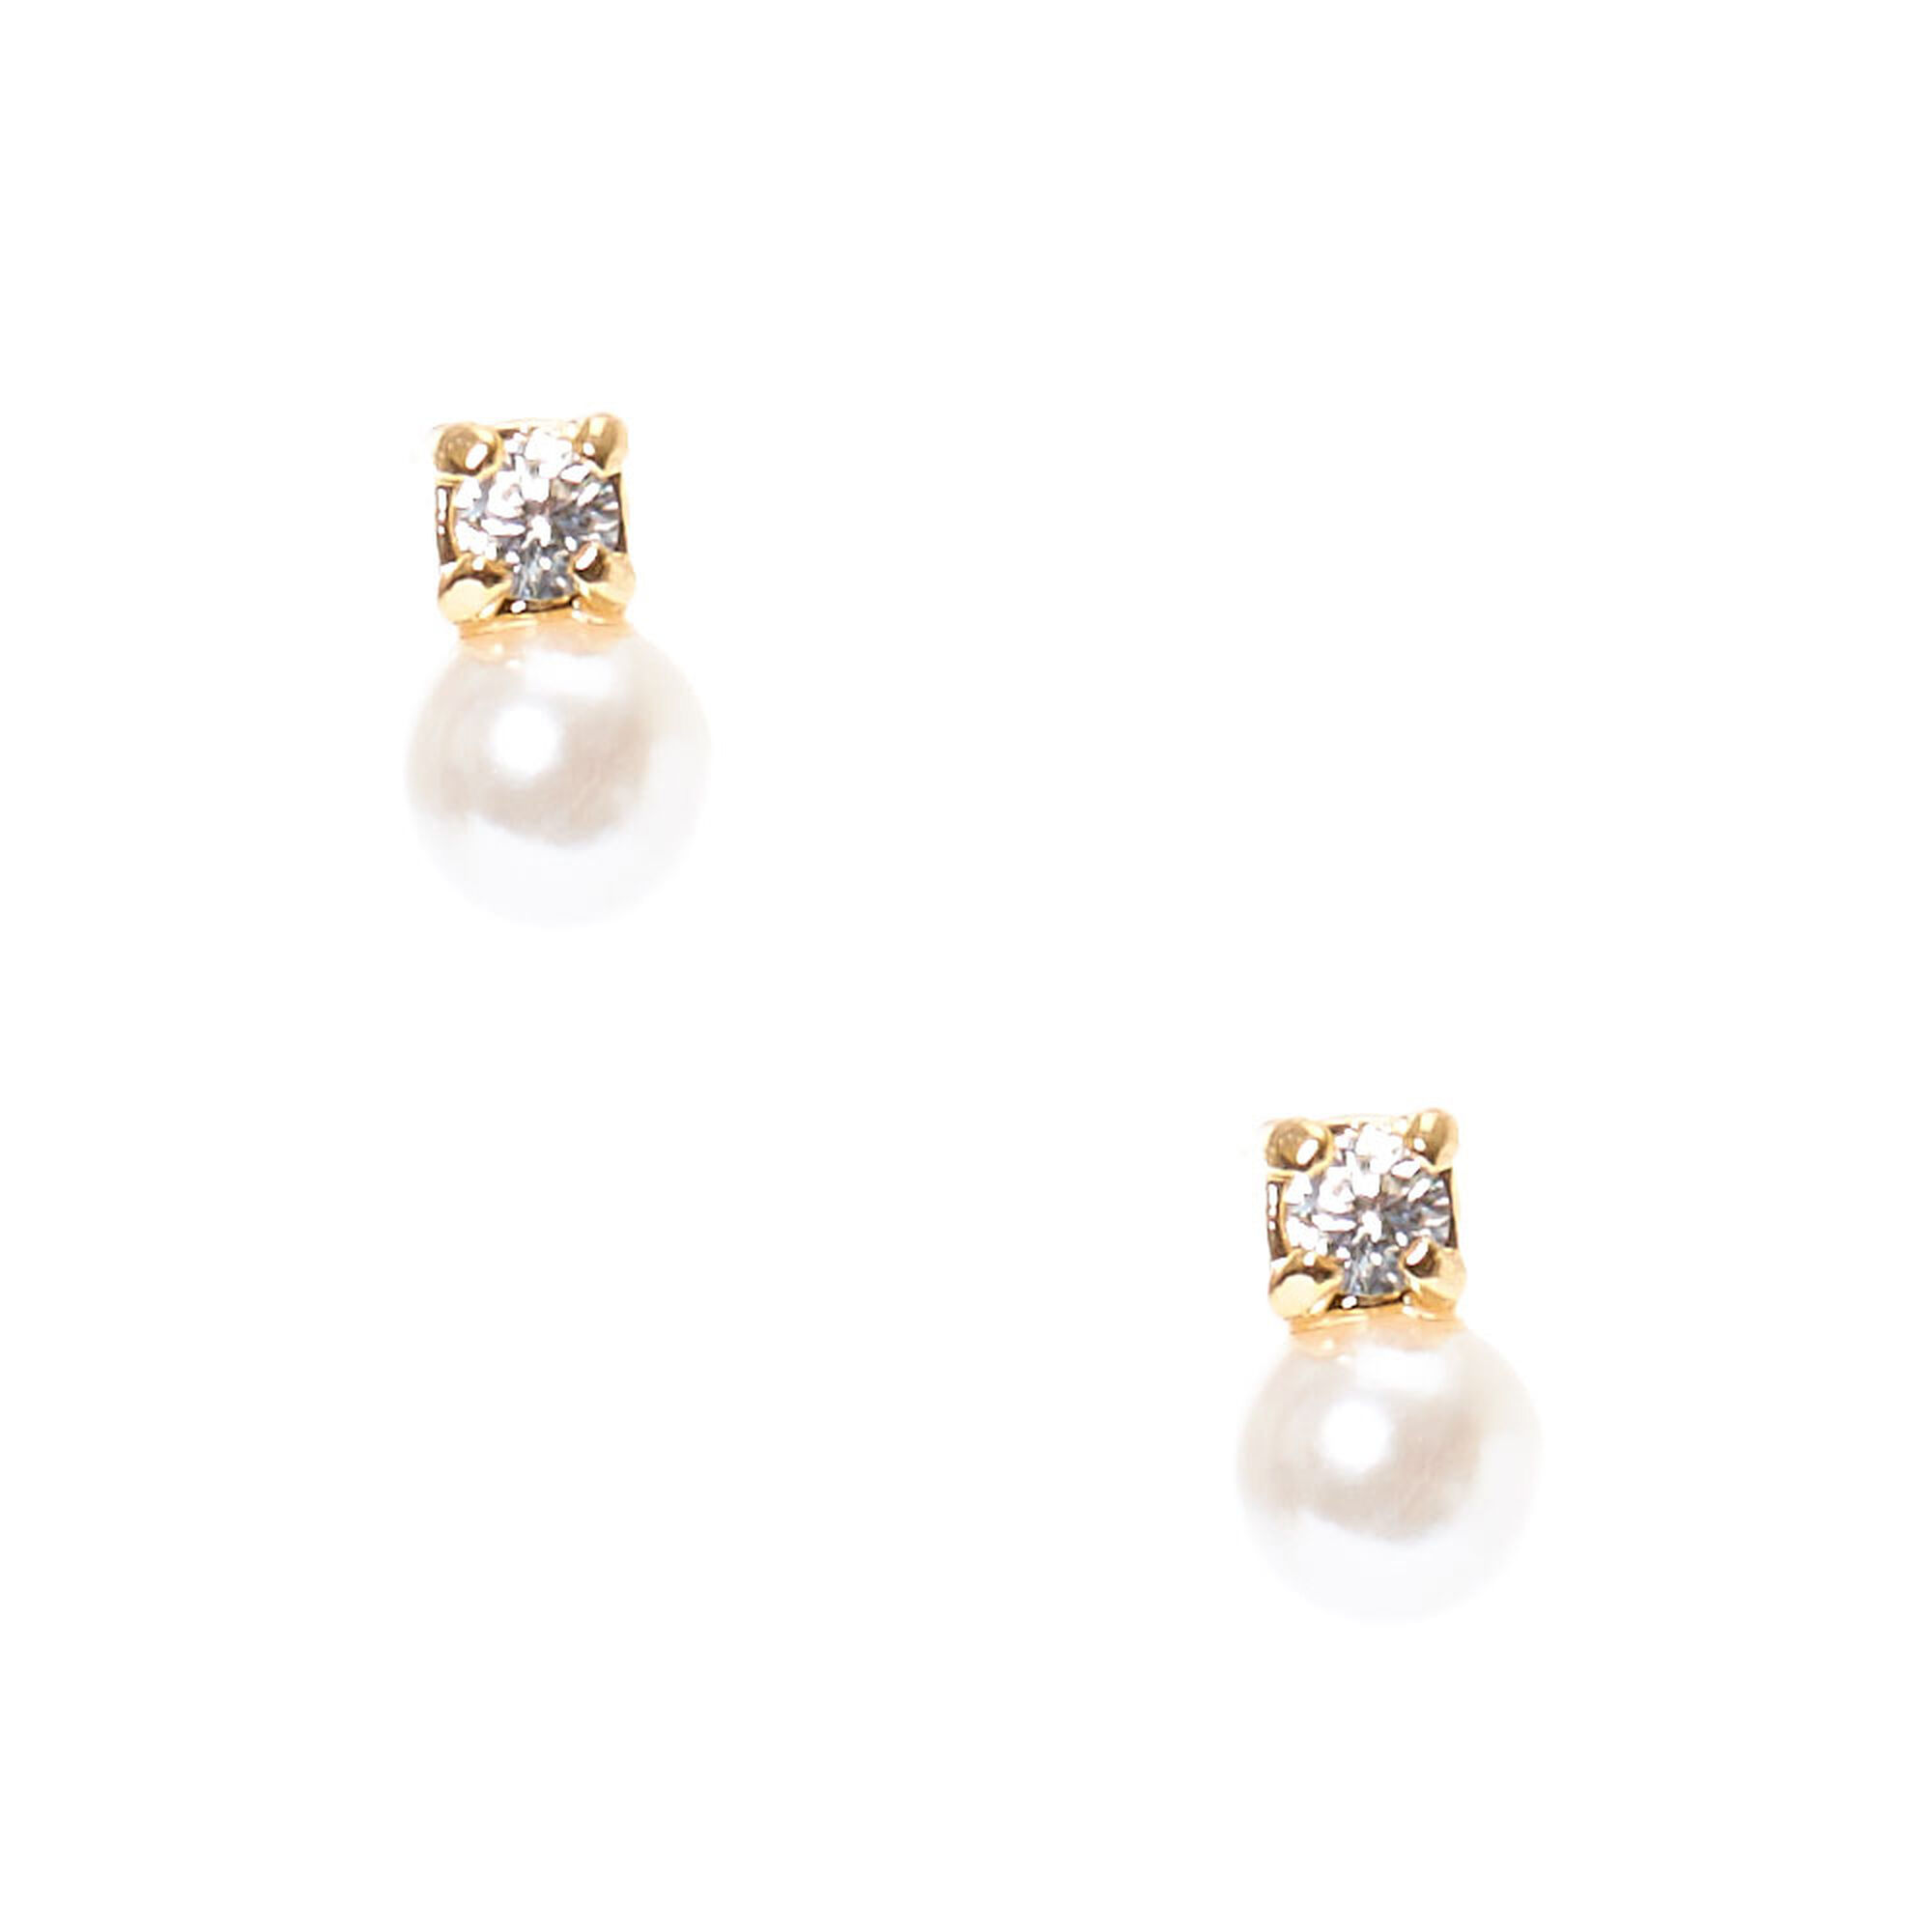 the studs cart e stud commerce crystal index zen faux of img and pearl art